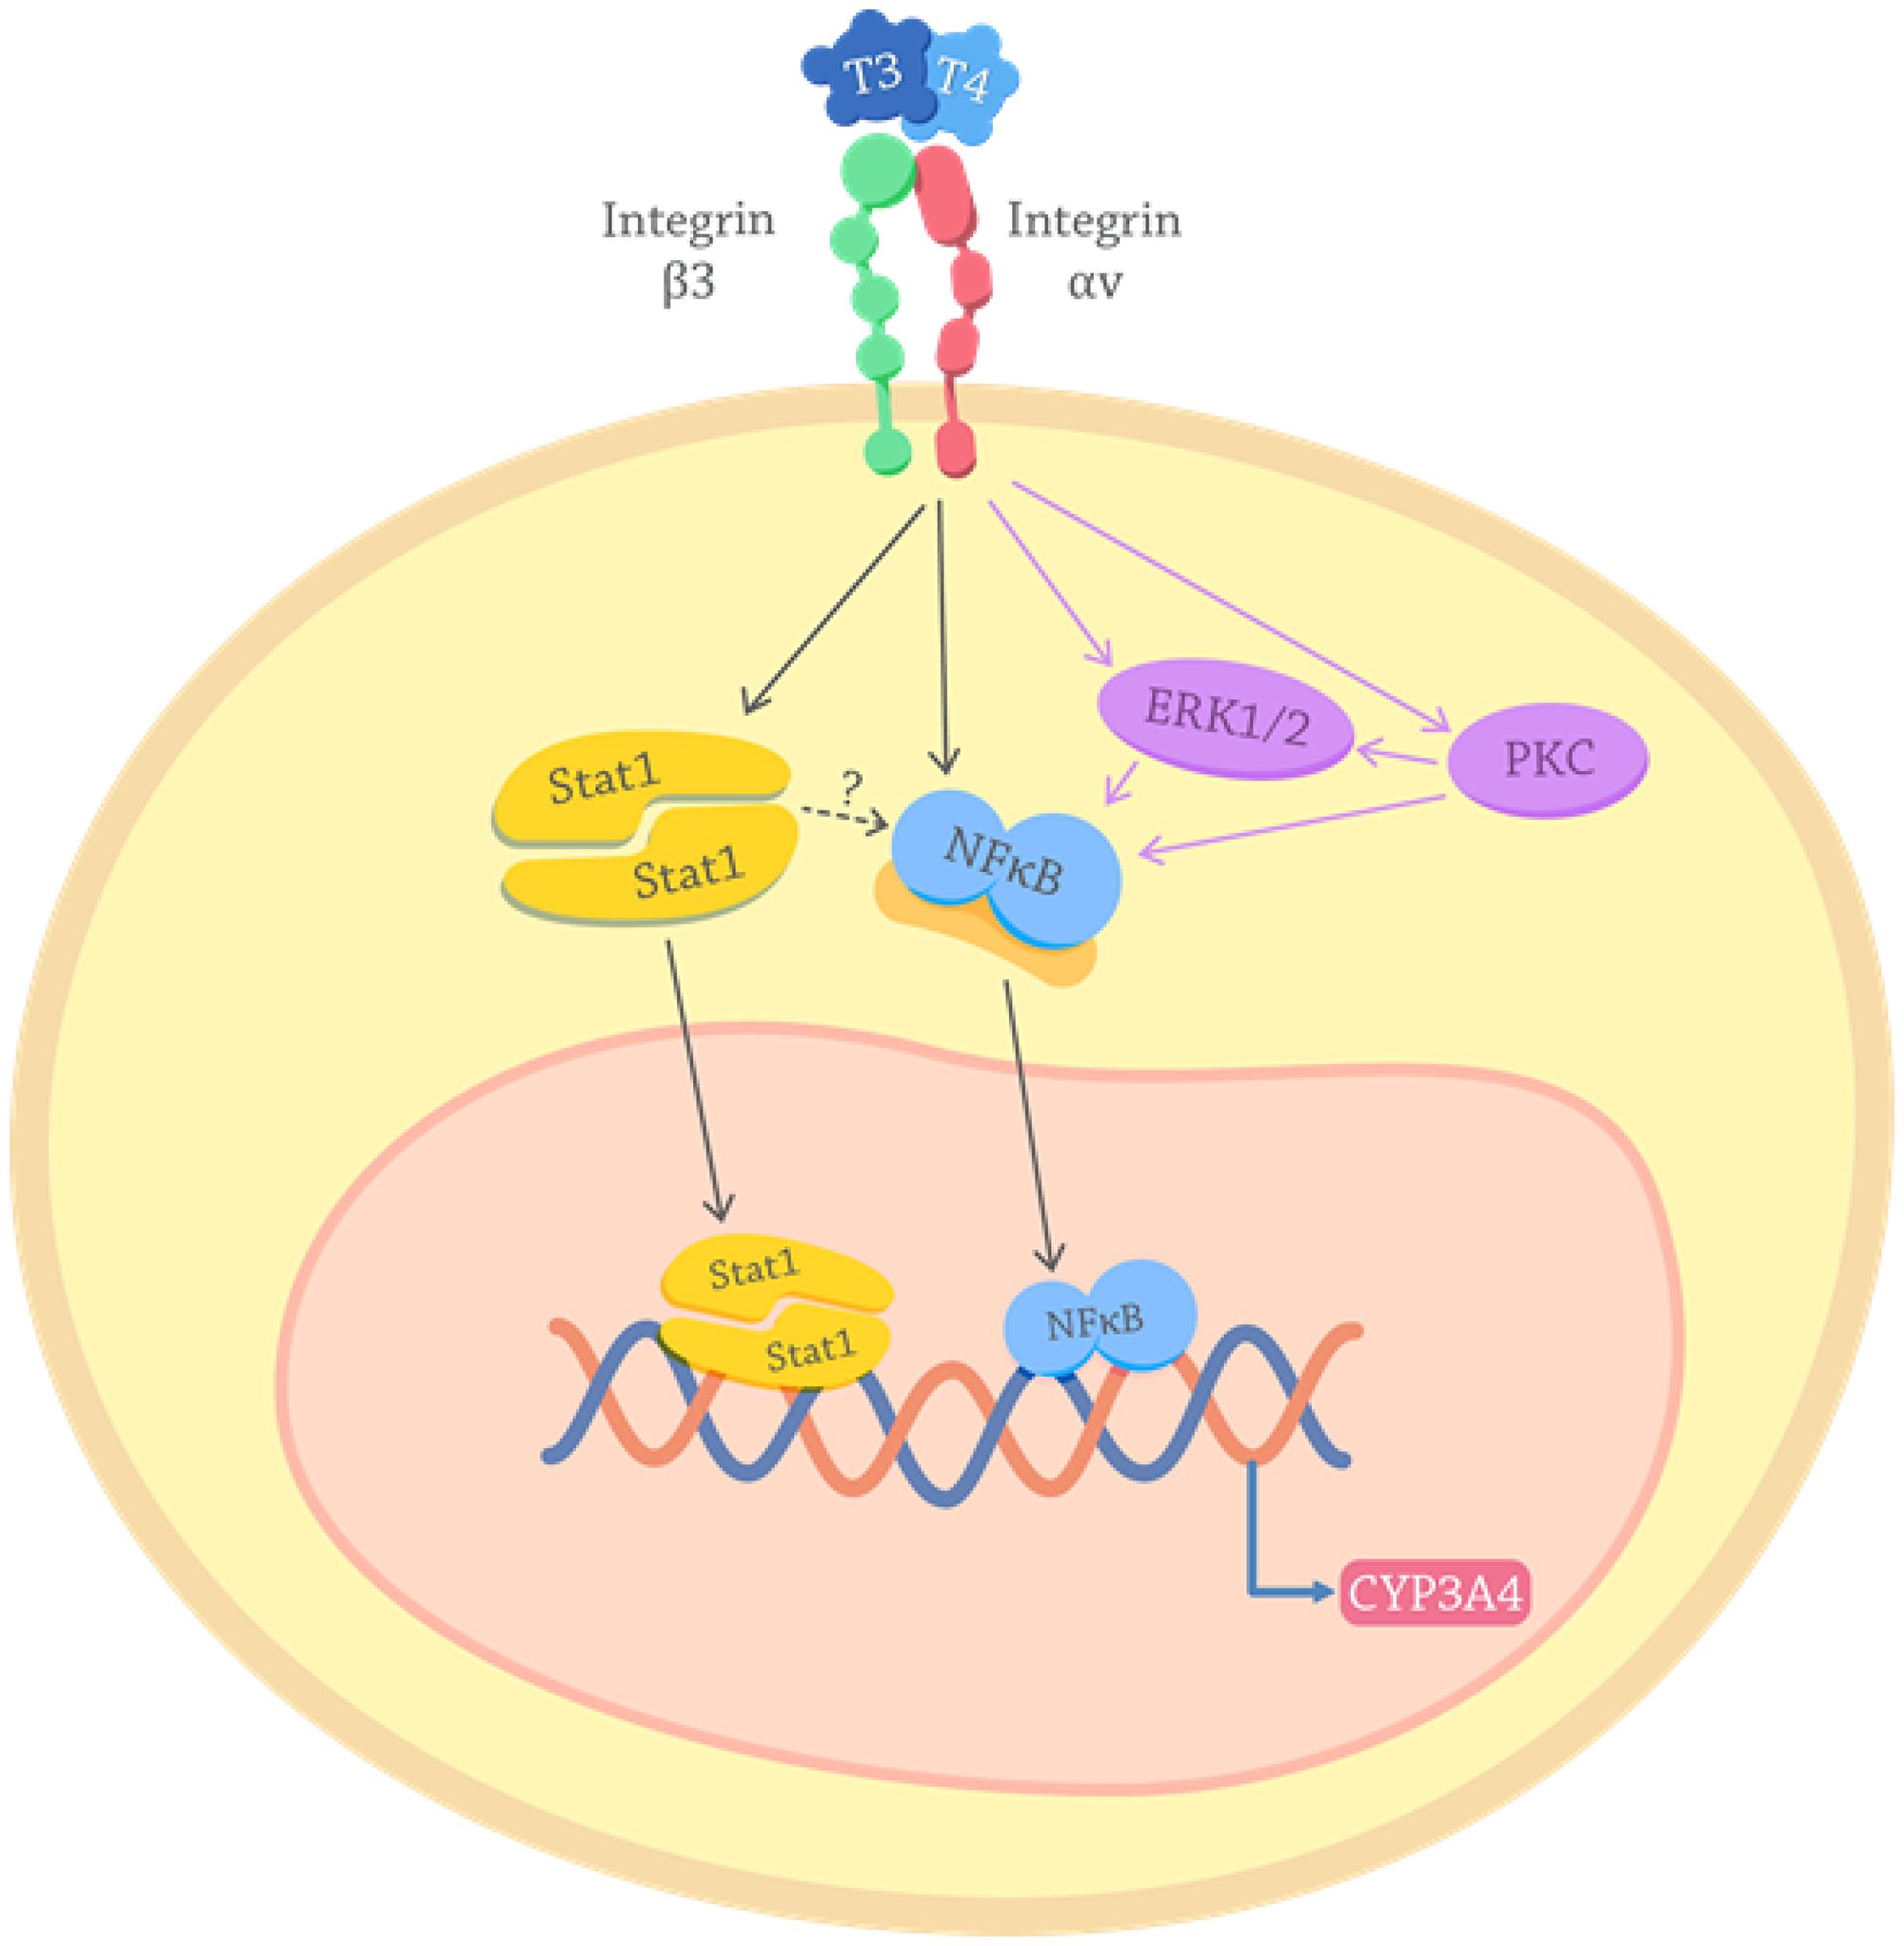 Proposed mechanisms for the effects of thyroid hormones on the CYP3A4 expression.